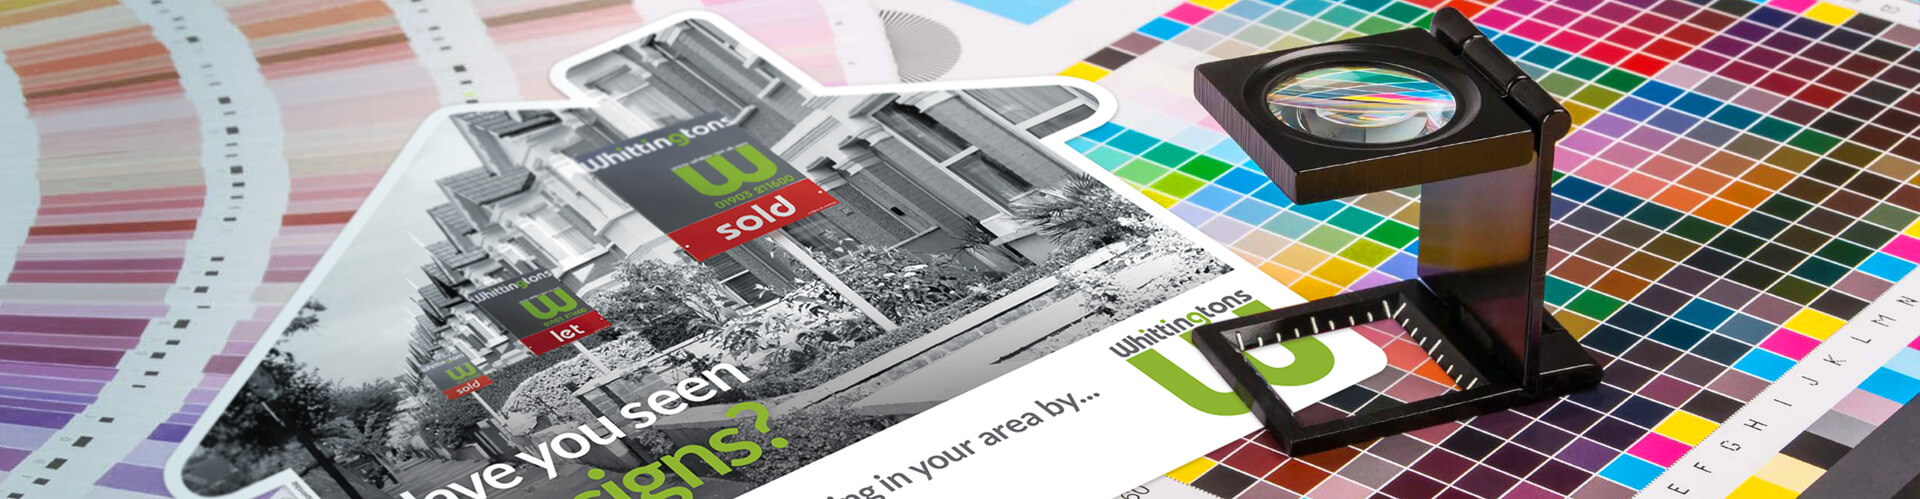 Printing estate agents leaflets and other popular marketing materials.